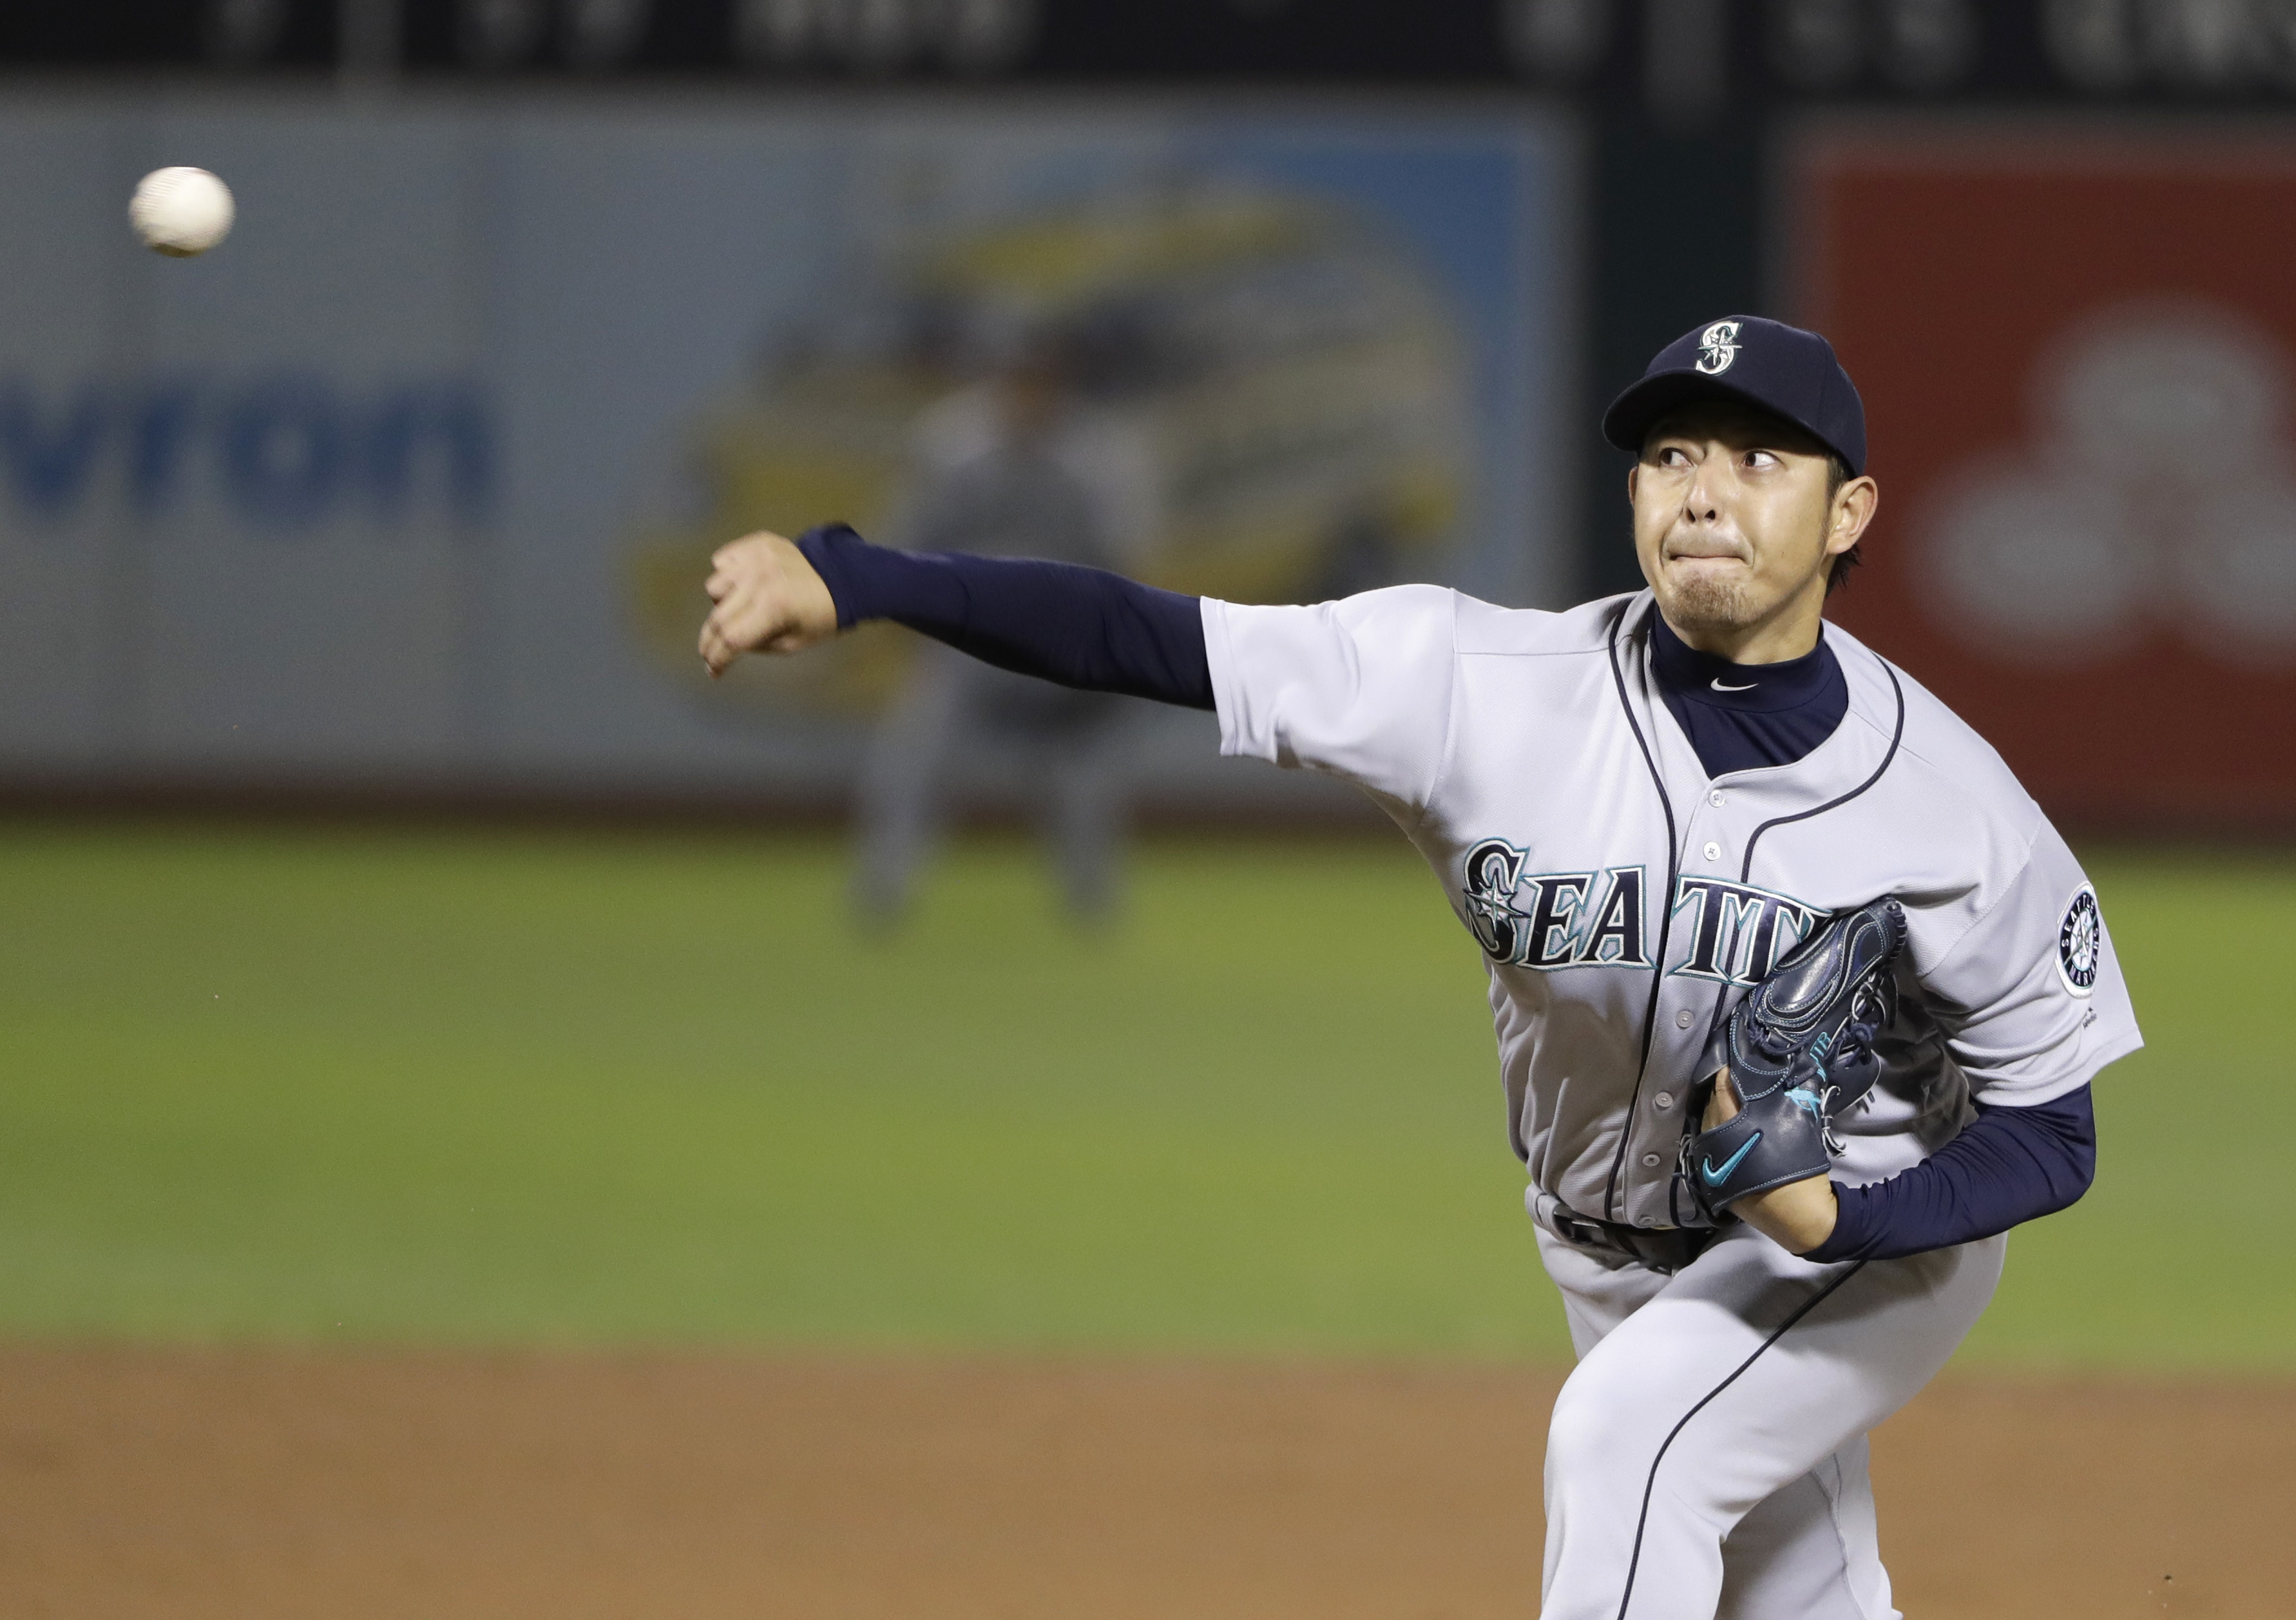 Seattle Mariners starting pitcher Hisashi Iwakuma throws to the Oakland Athletics during the sixth inning of a baseball game Friday, Sept. 9, 2016, in Oakland, Calif. (AP Photo/Marcio Jose Sanchez)